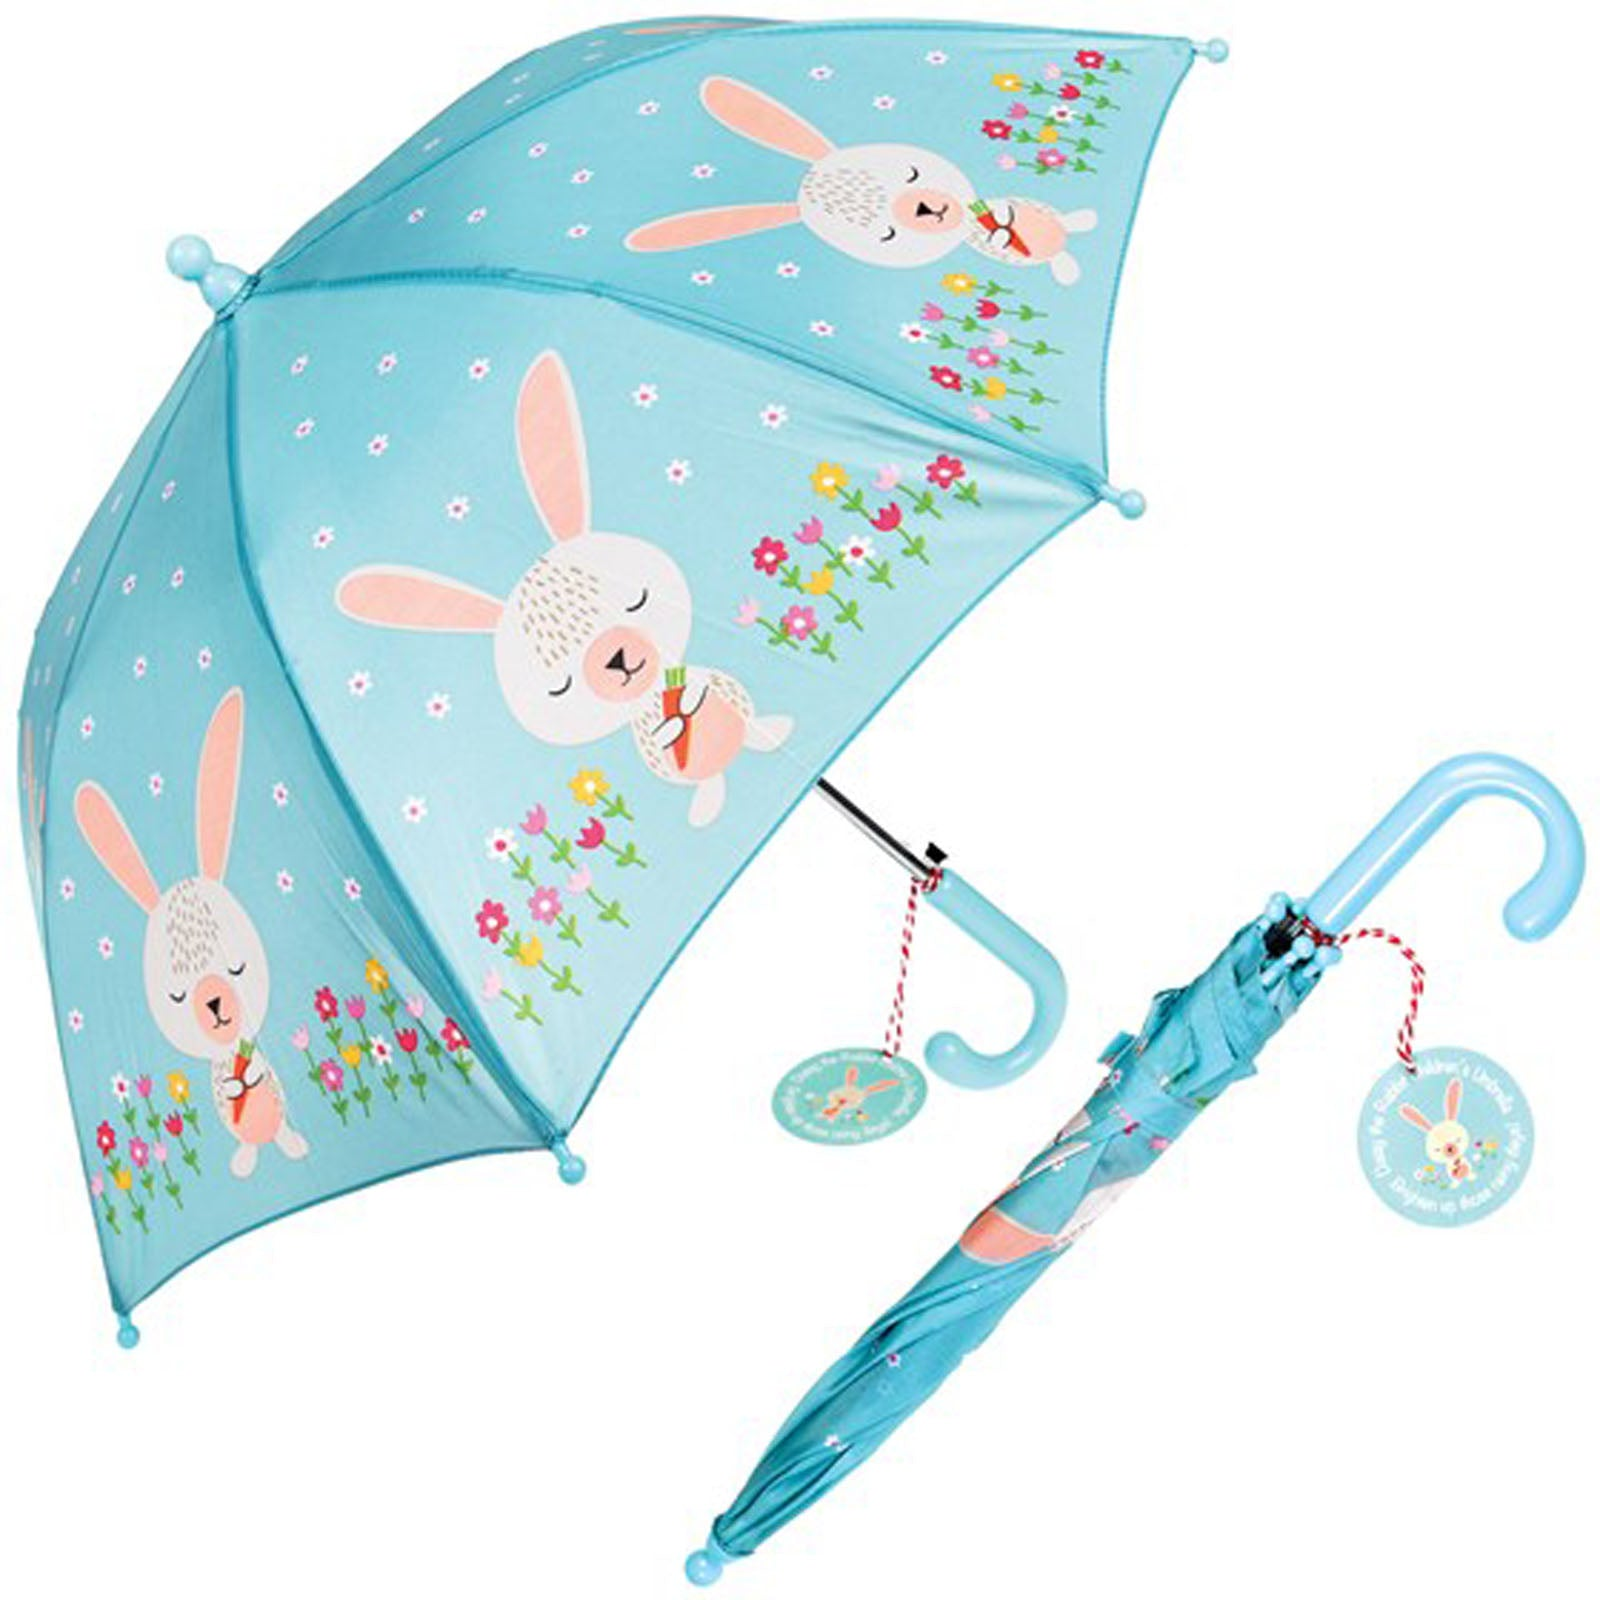 DAISY THE RABBIT CHILDREN'S UMBRELLA